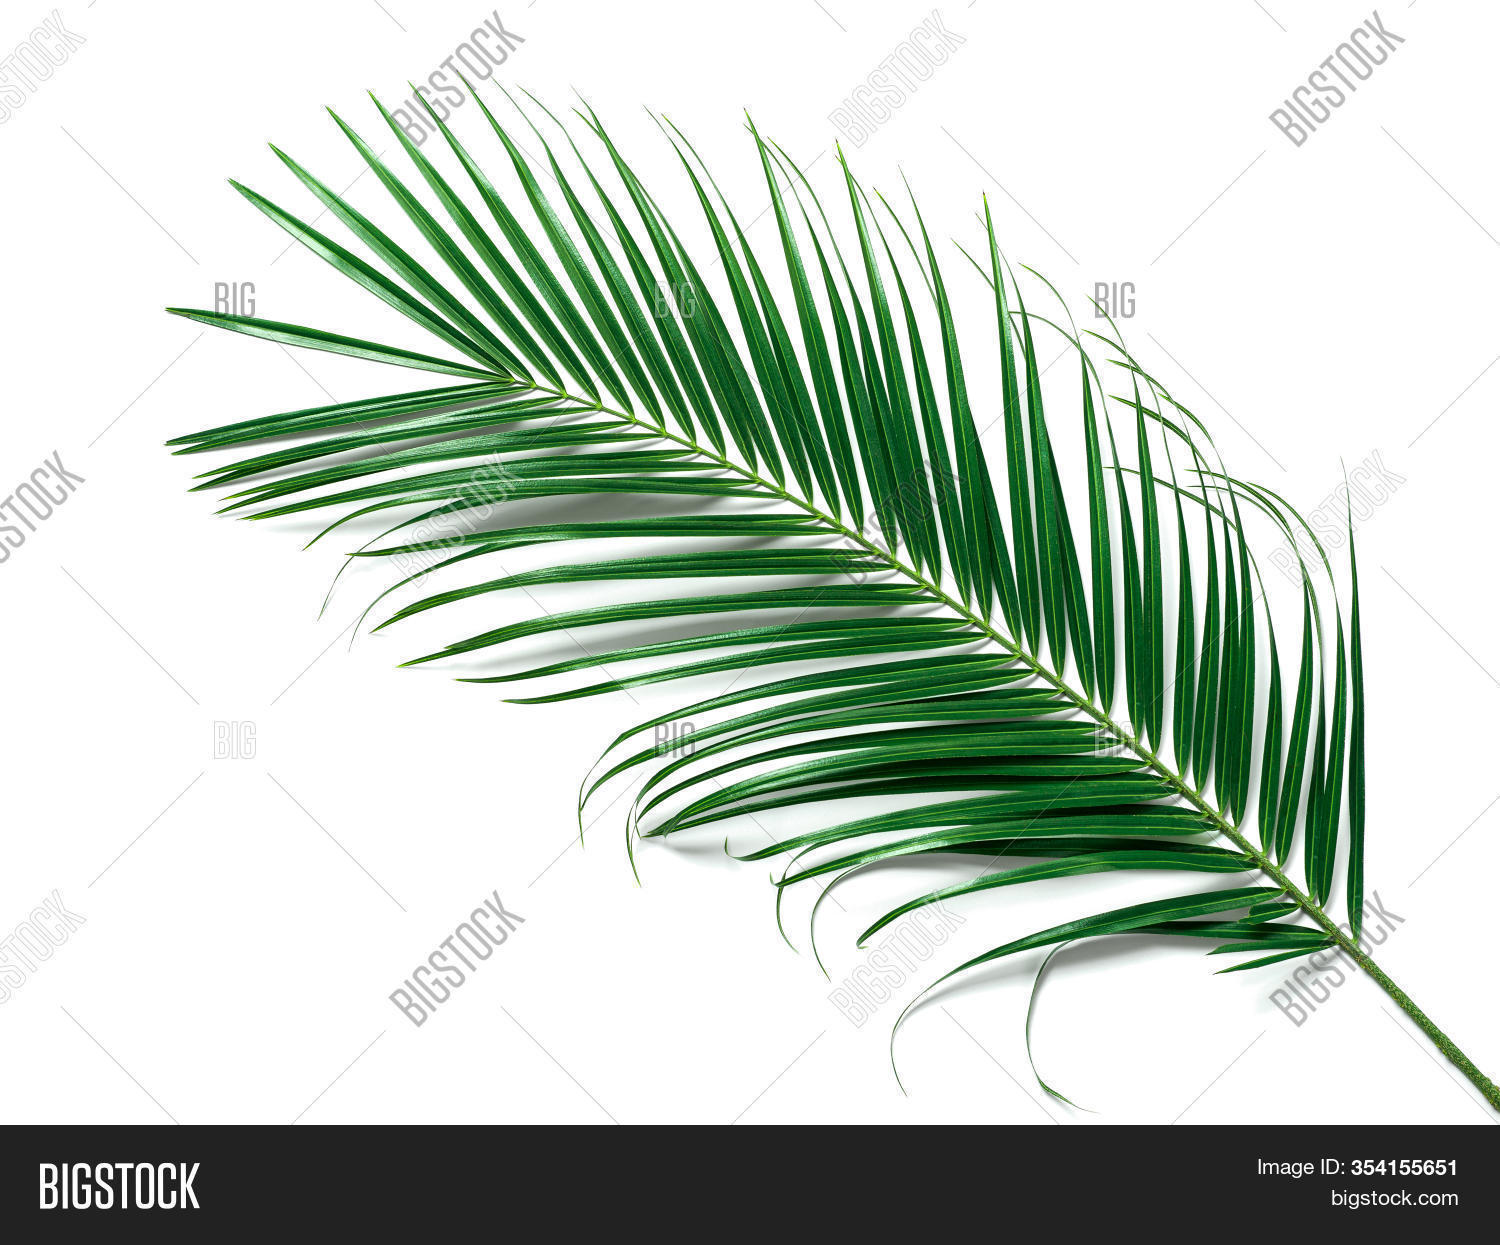 Palm Leaves Isolated Image Photo Free Trial Bigstock Search for more beautiful pictures and free images on picjumbo! bigstock